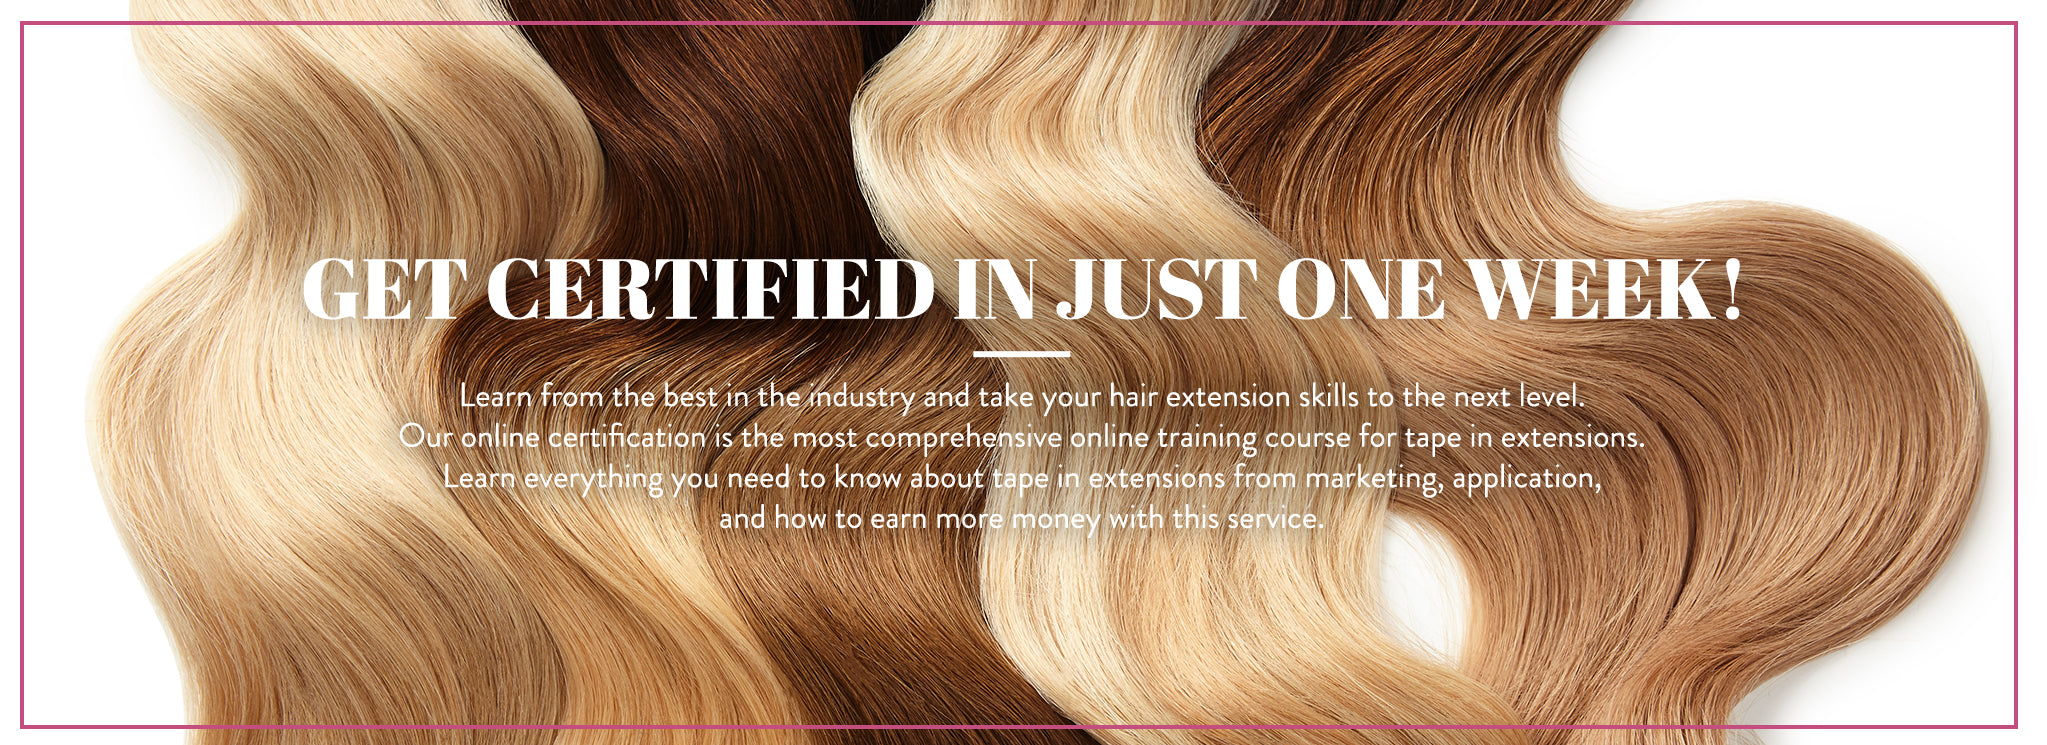 Become Certified Glam Seamless Professional